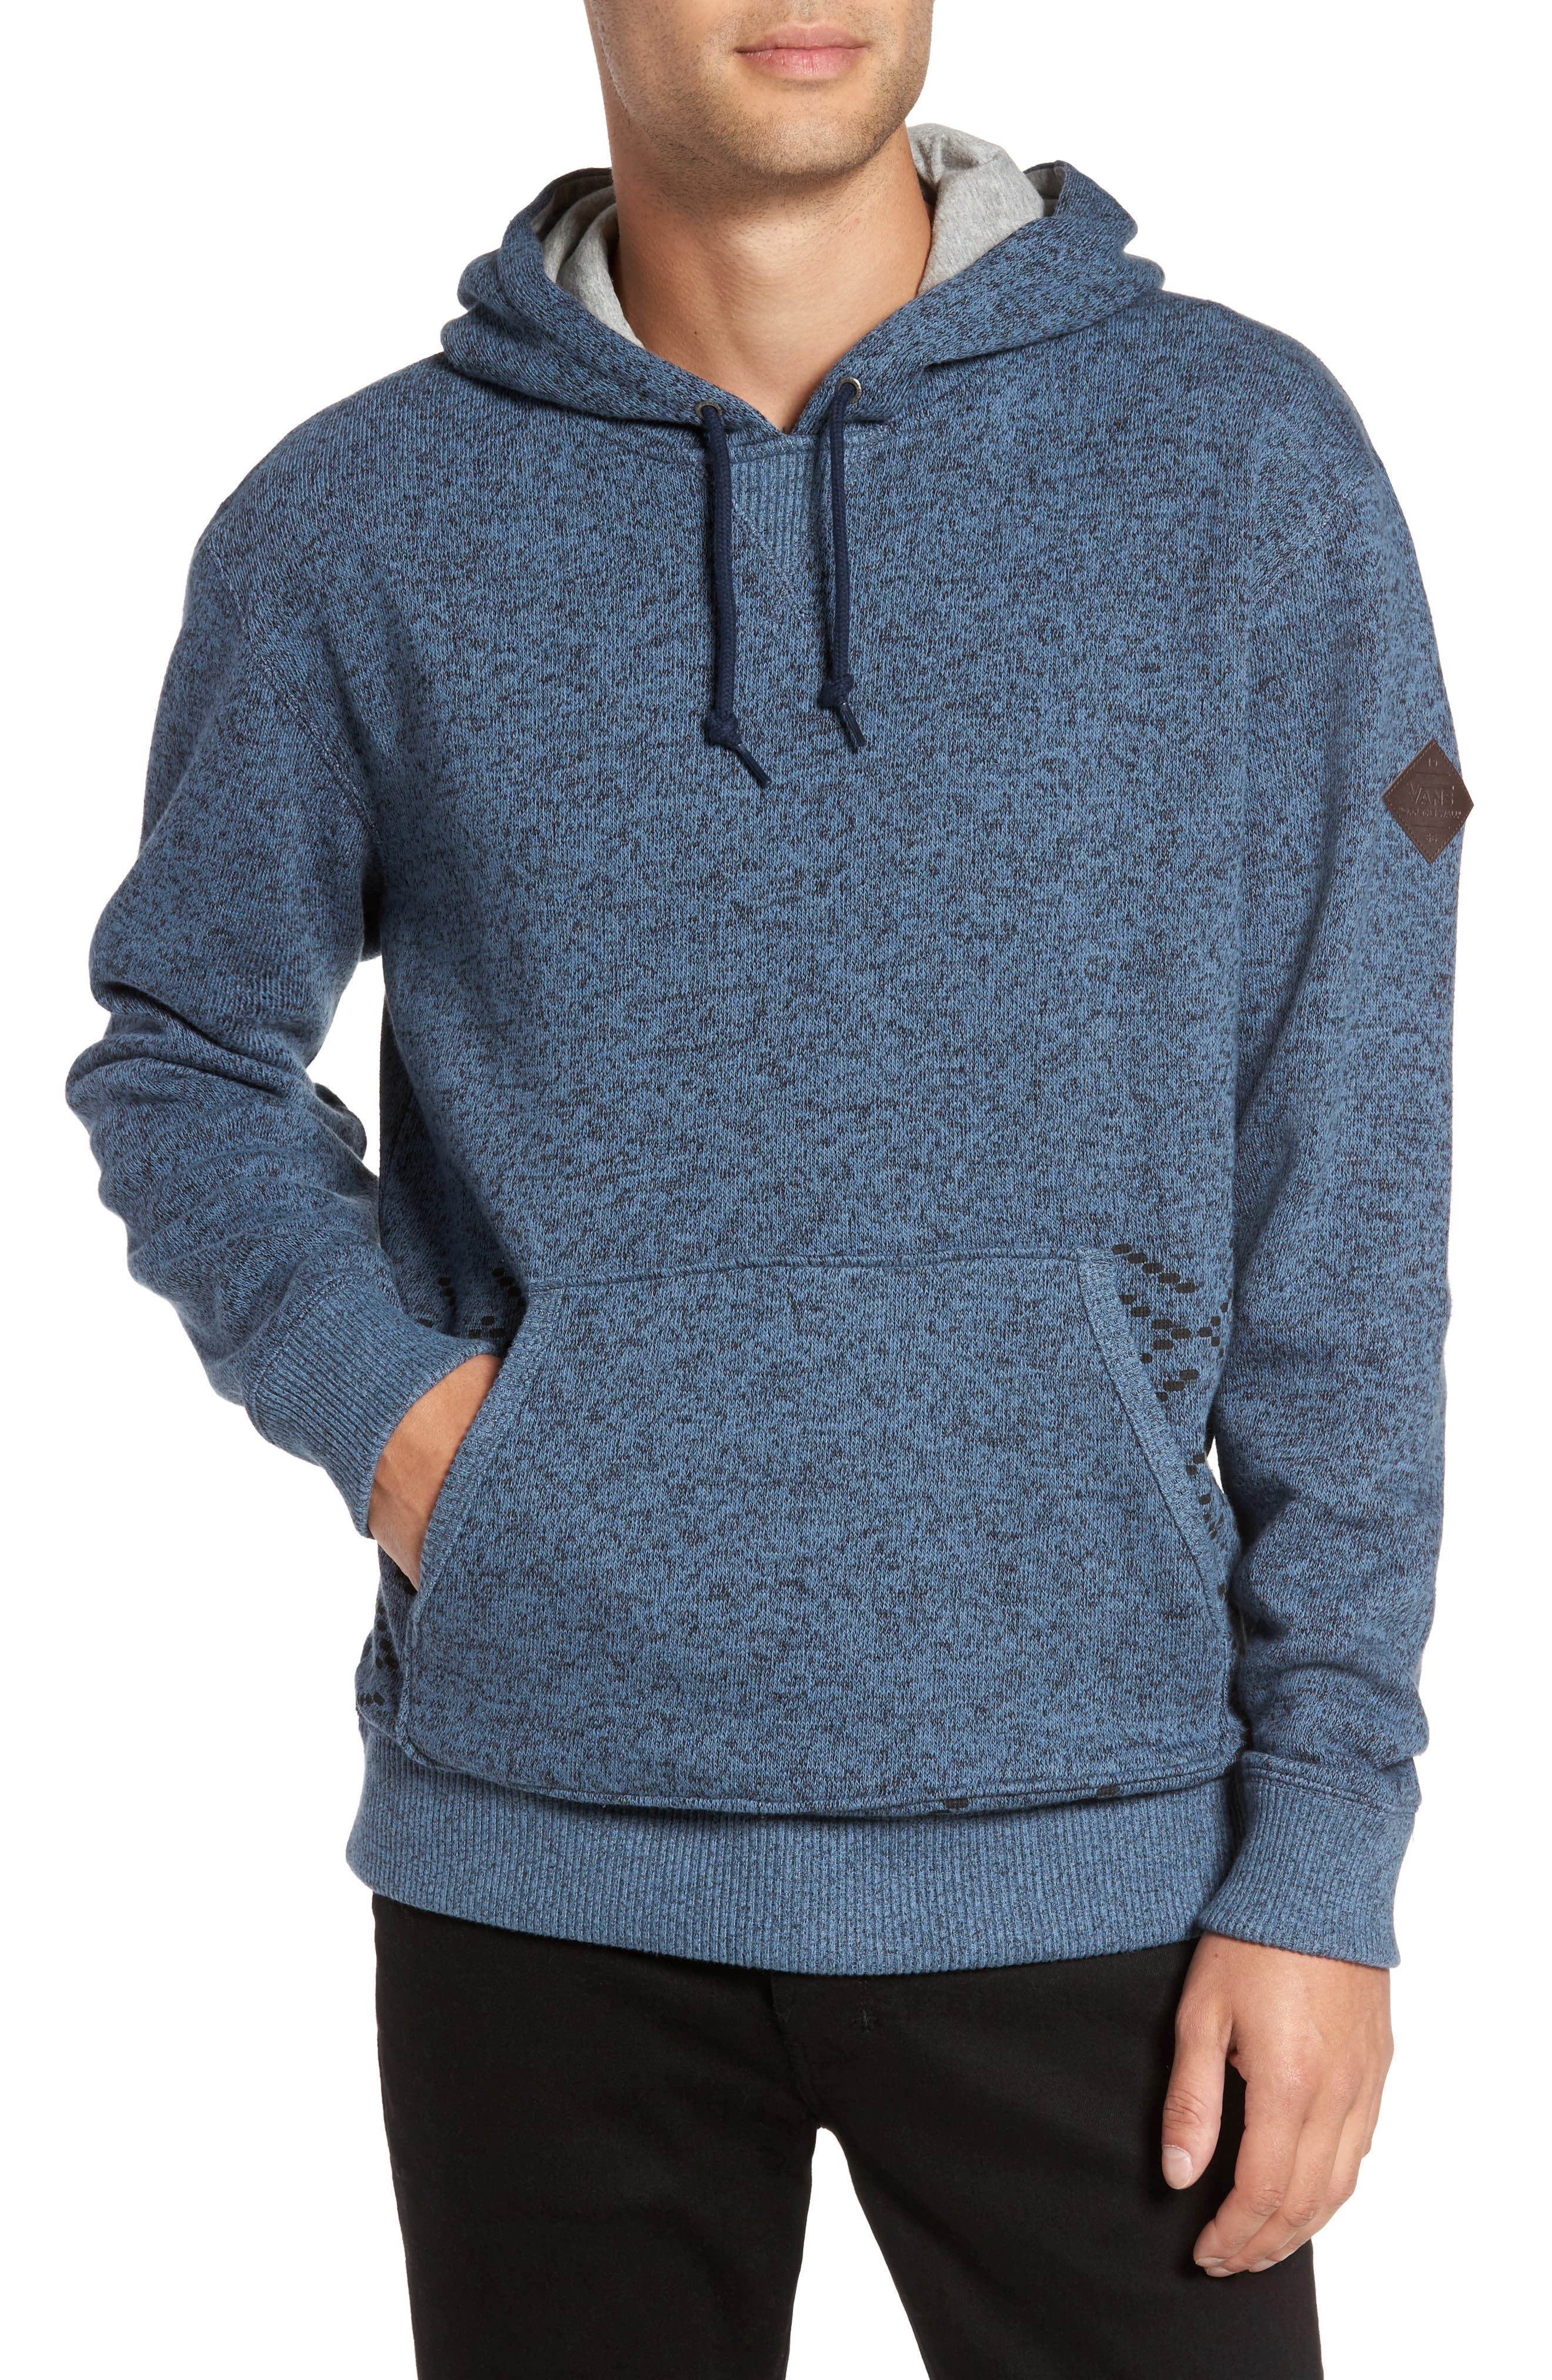 Alternate Image 1 Selected - Vans Brookstone Geo Print Hoodie